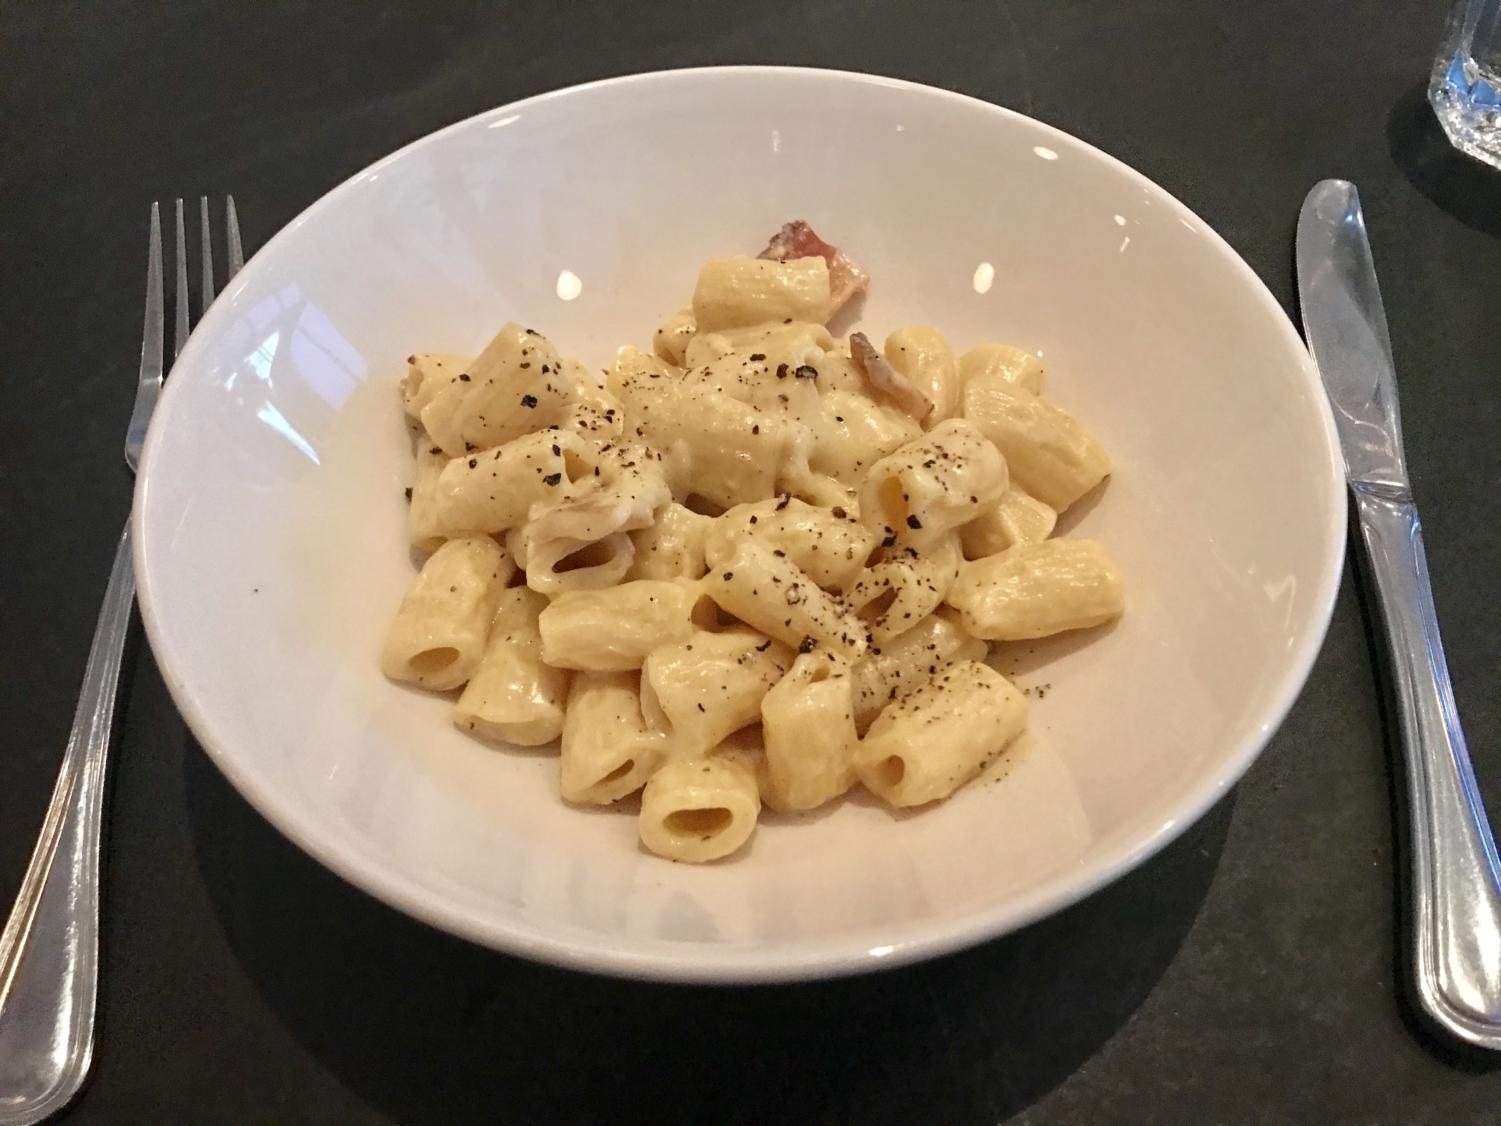 The rigatoni carbonara had a great mix of flavors and textures.